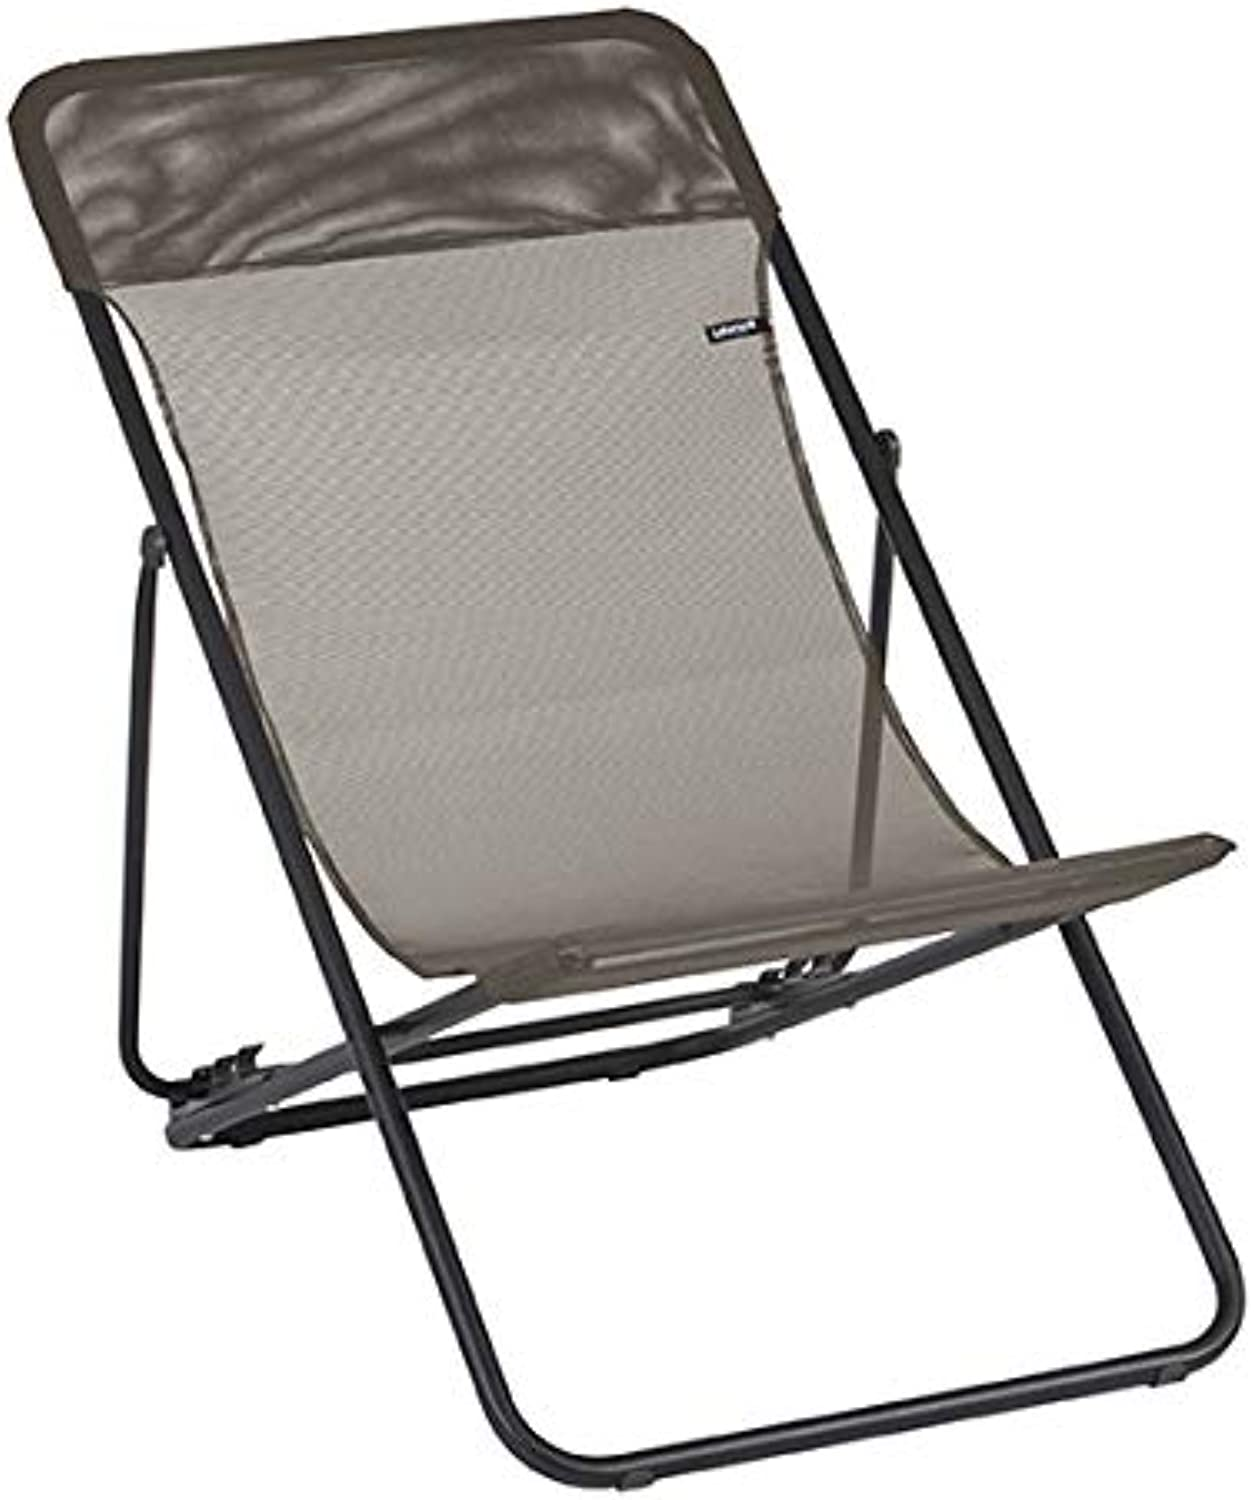 HomeRoots Furniture Folding Sling Chair - Set of 2 - Black Steel Frame - Graphite Fabric (320610)